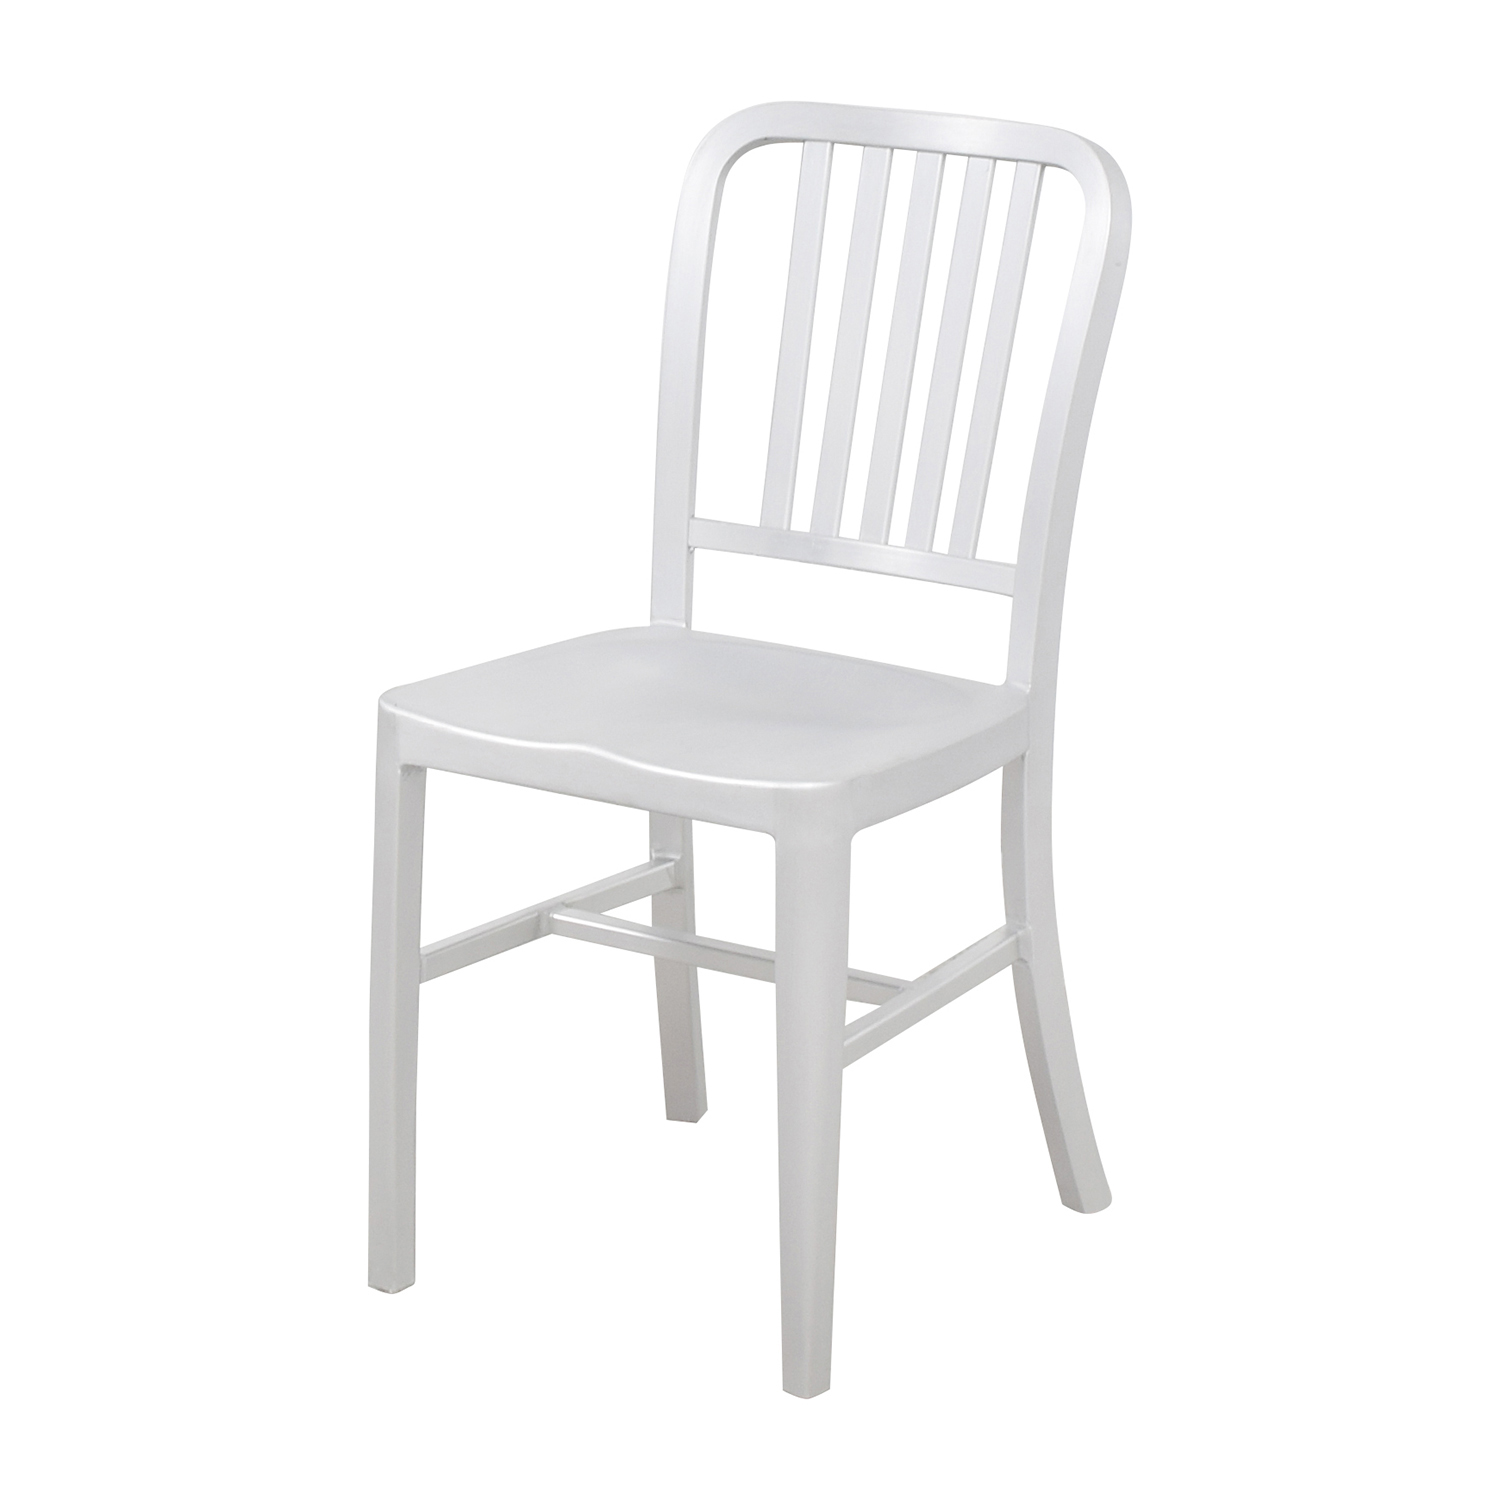 InMod Aluminum Stool / Chairs